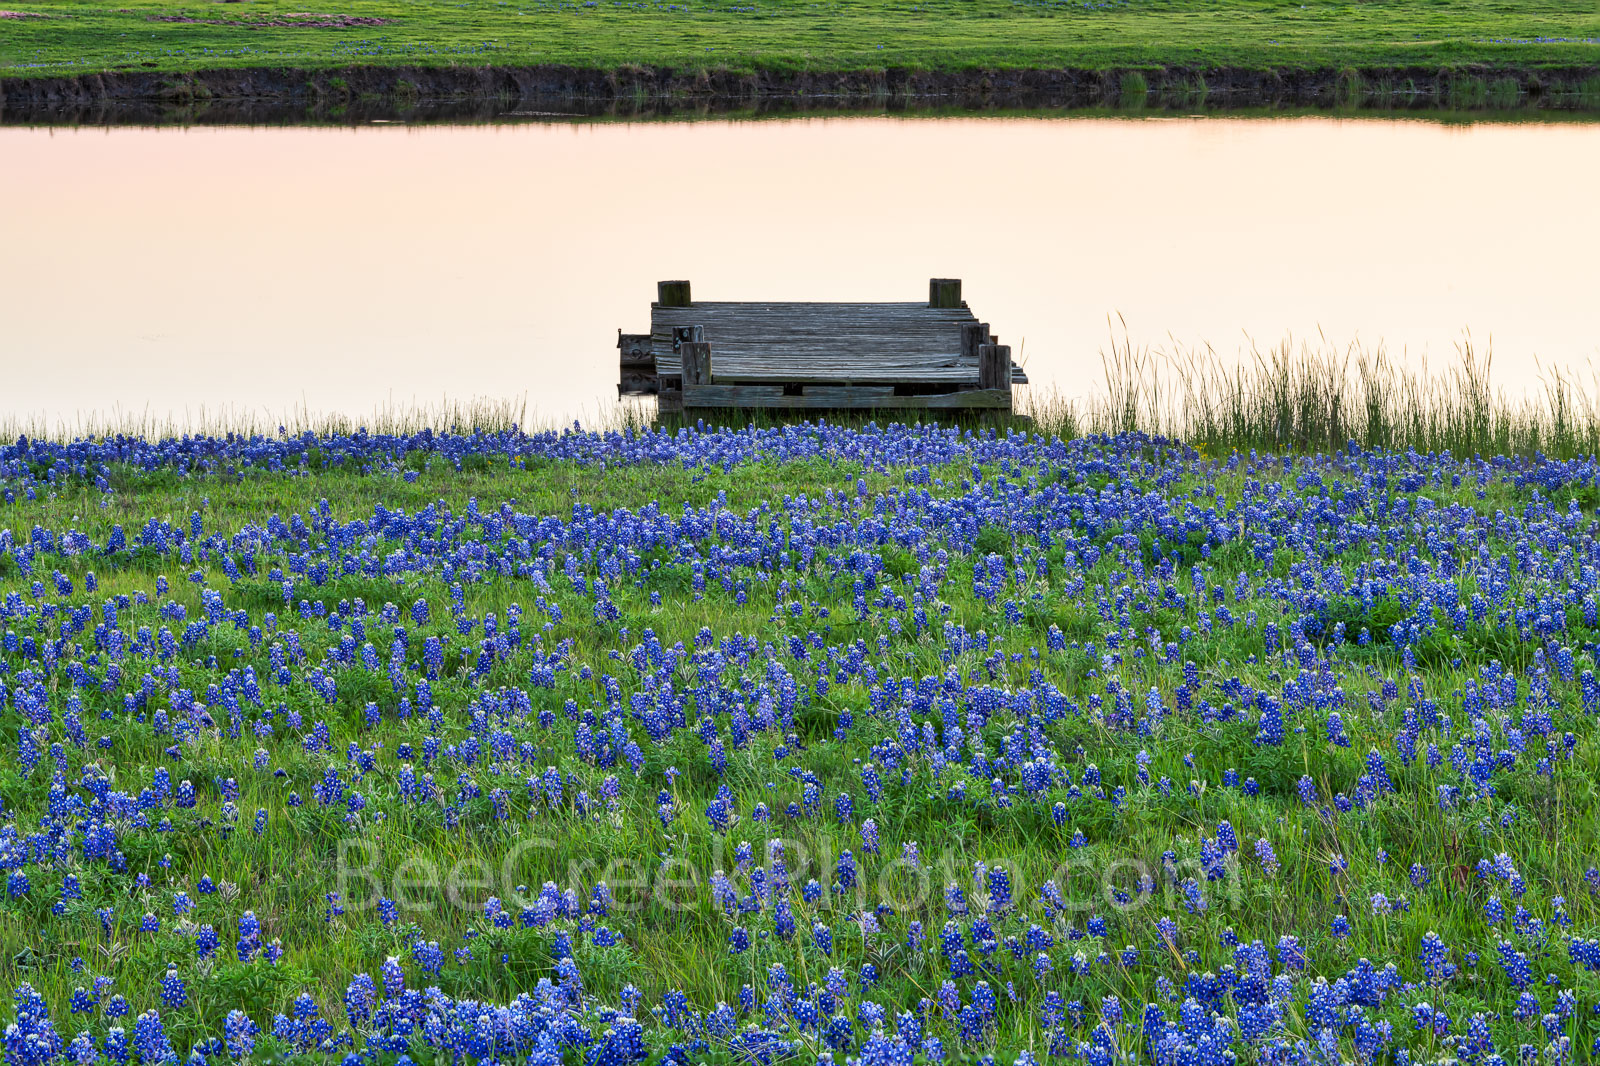 Texas bluebonnets, pond, water edge, pond, rancher, farm, rural texas, pier, ranch, dusk, wildflowers, bluebonnets, , gulf cost images, Texas beaches, photo